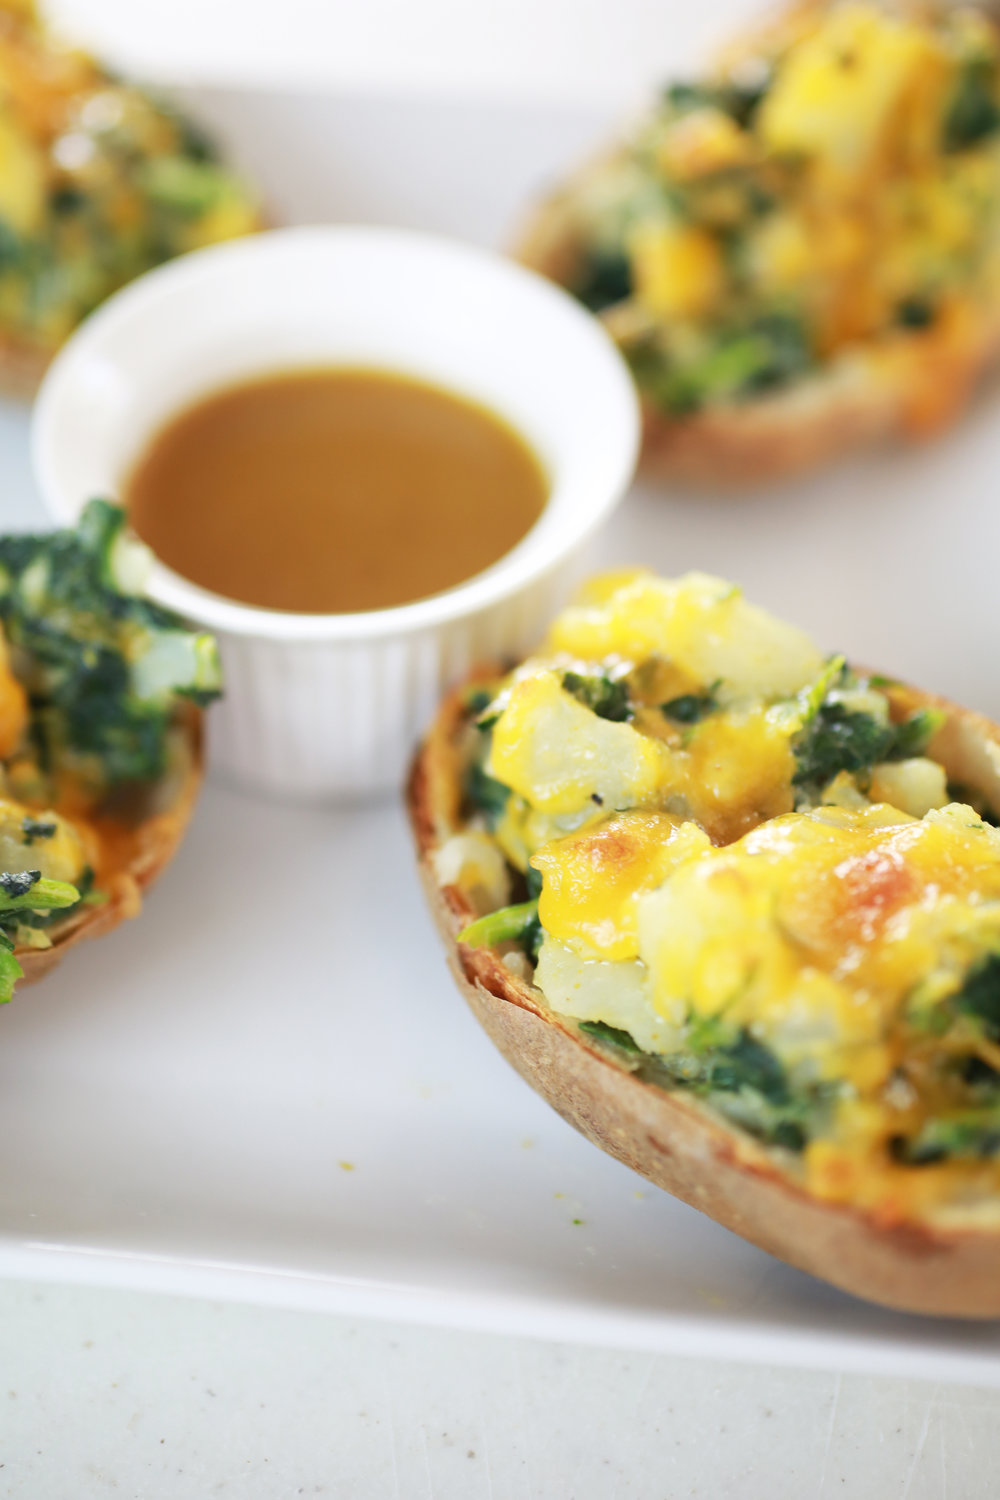 Spinach and Cheese Stuffed Potatoes